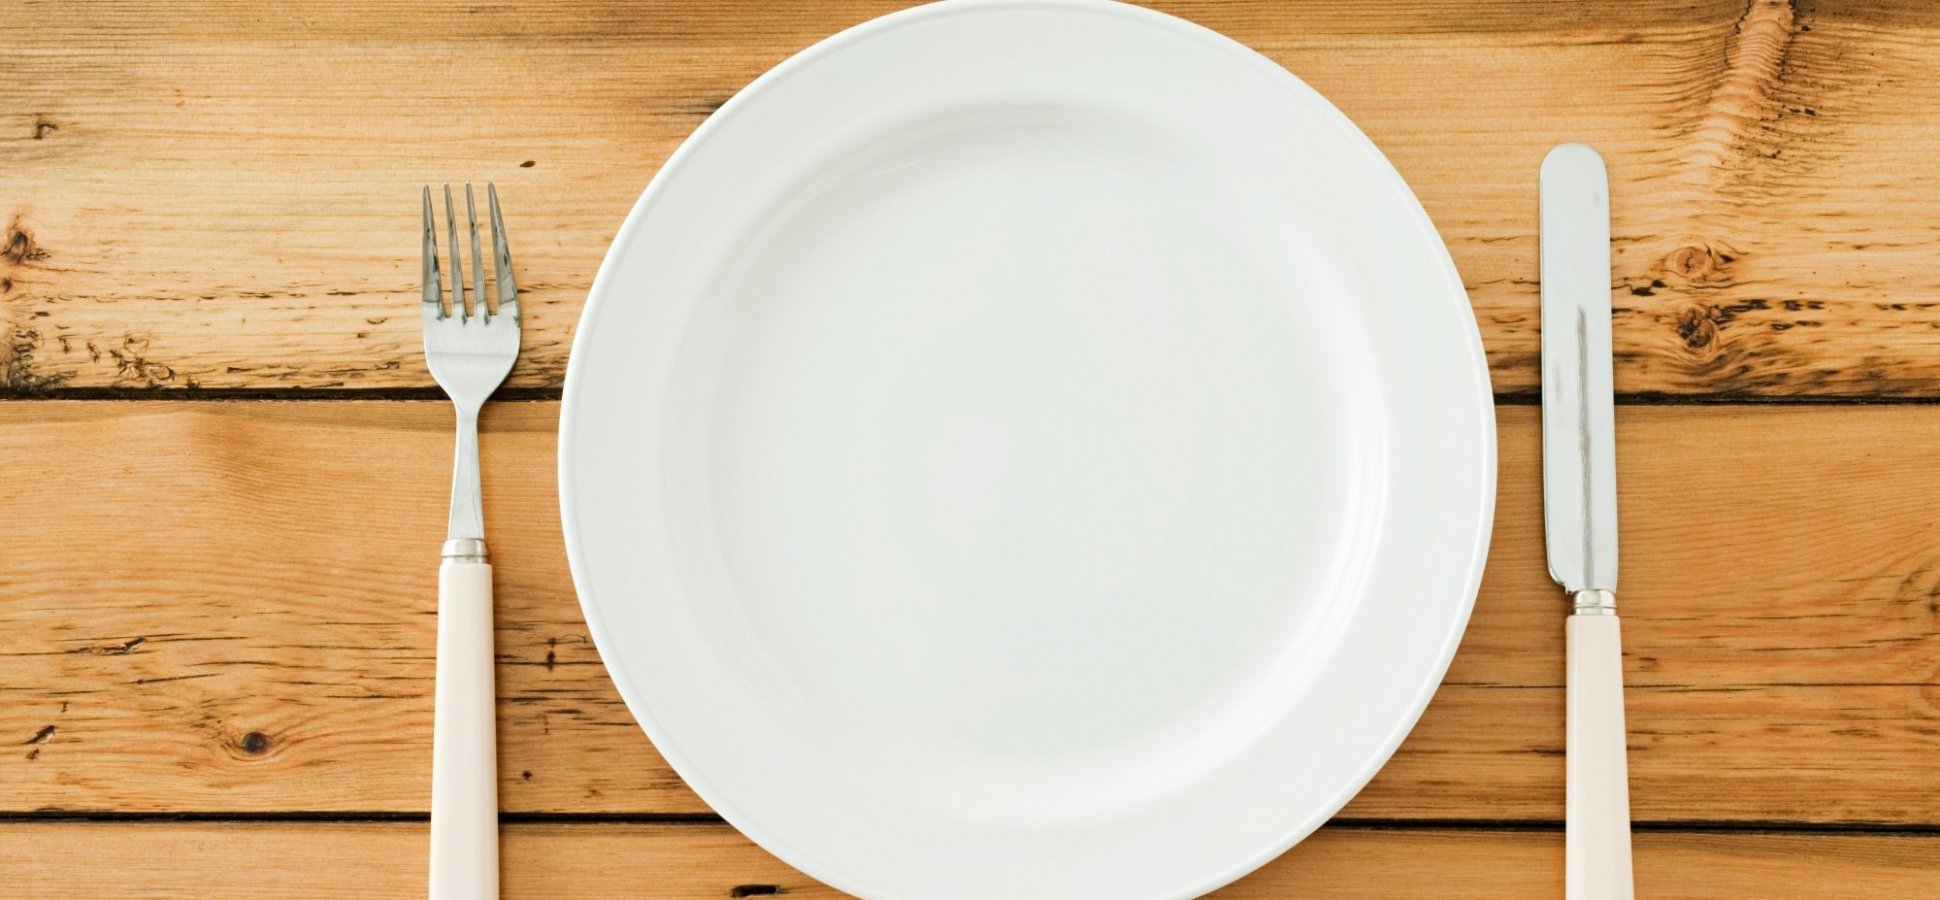 Plate and Cutlery Image